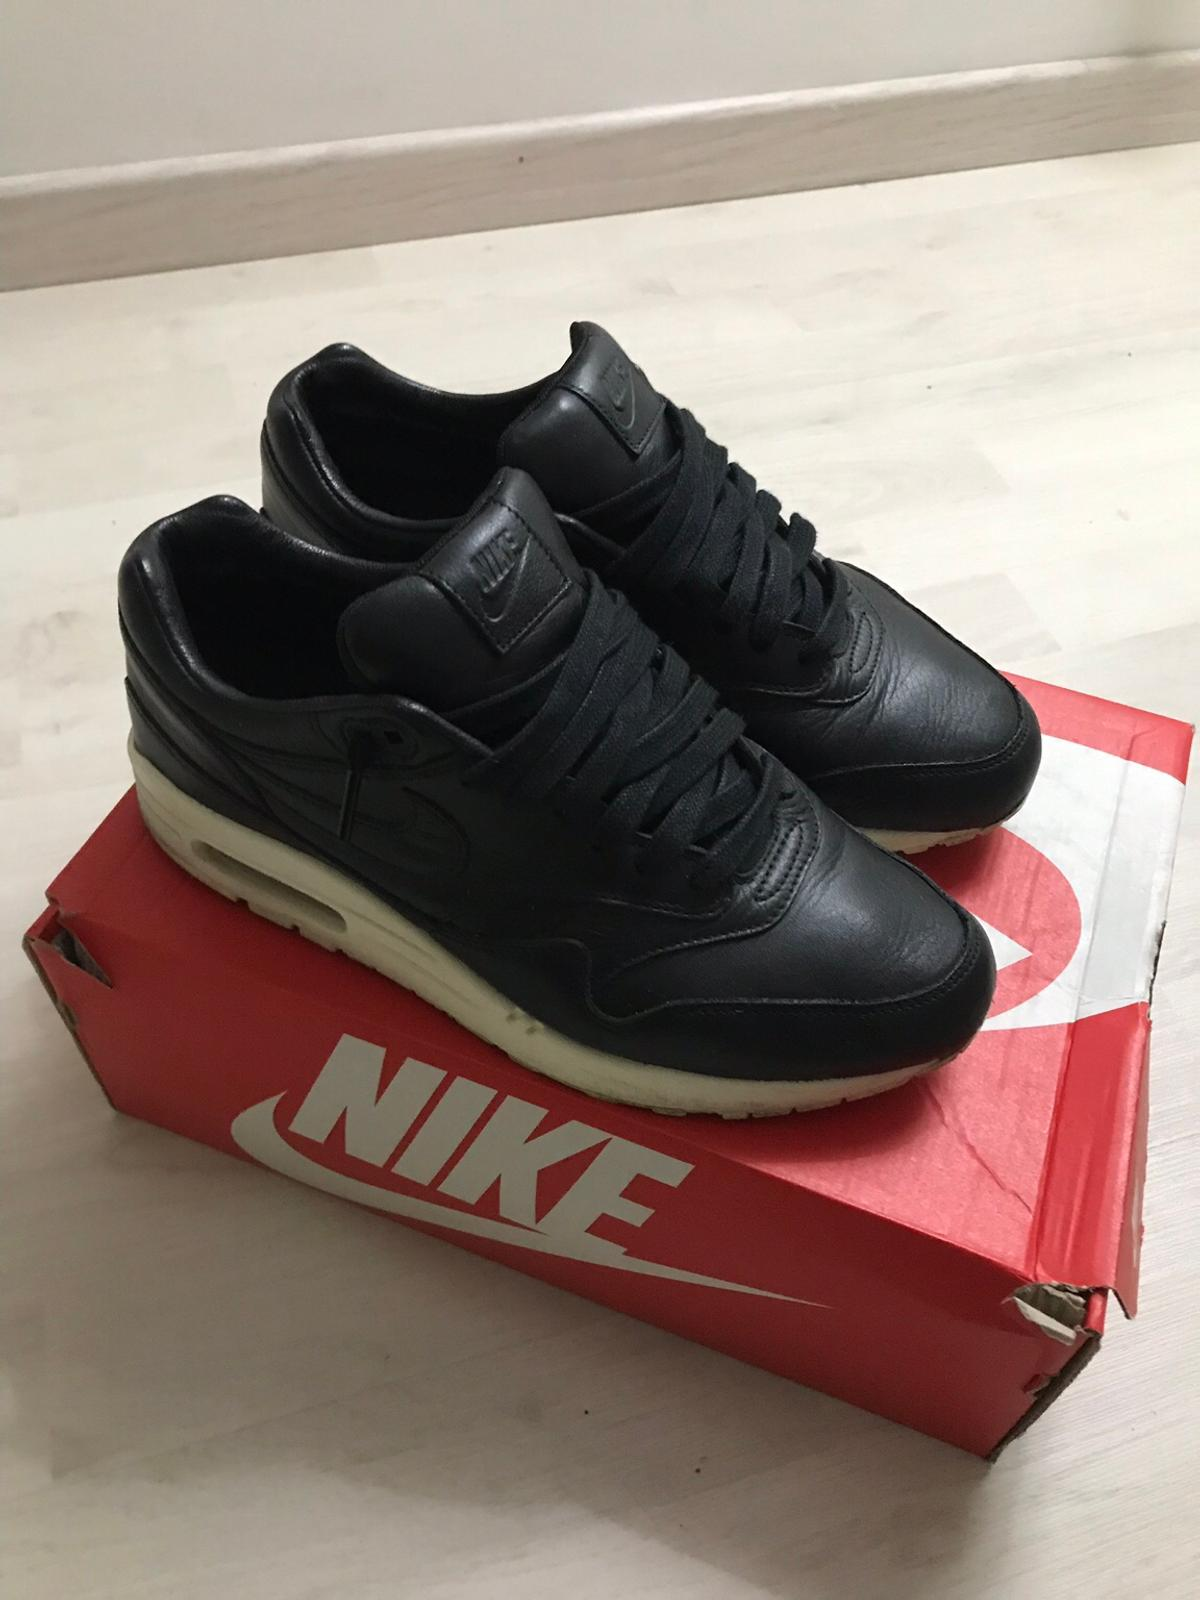 Nike air max 1 pinnacle black in 00125 Roma for €80.00 for